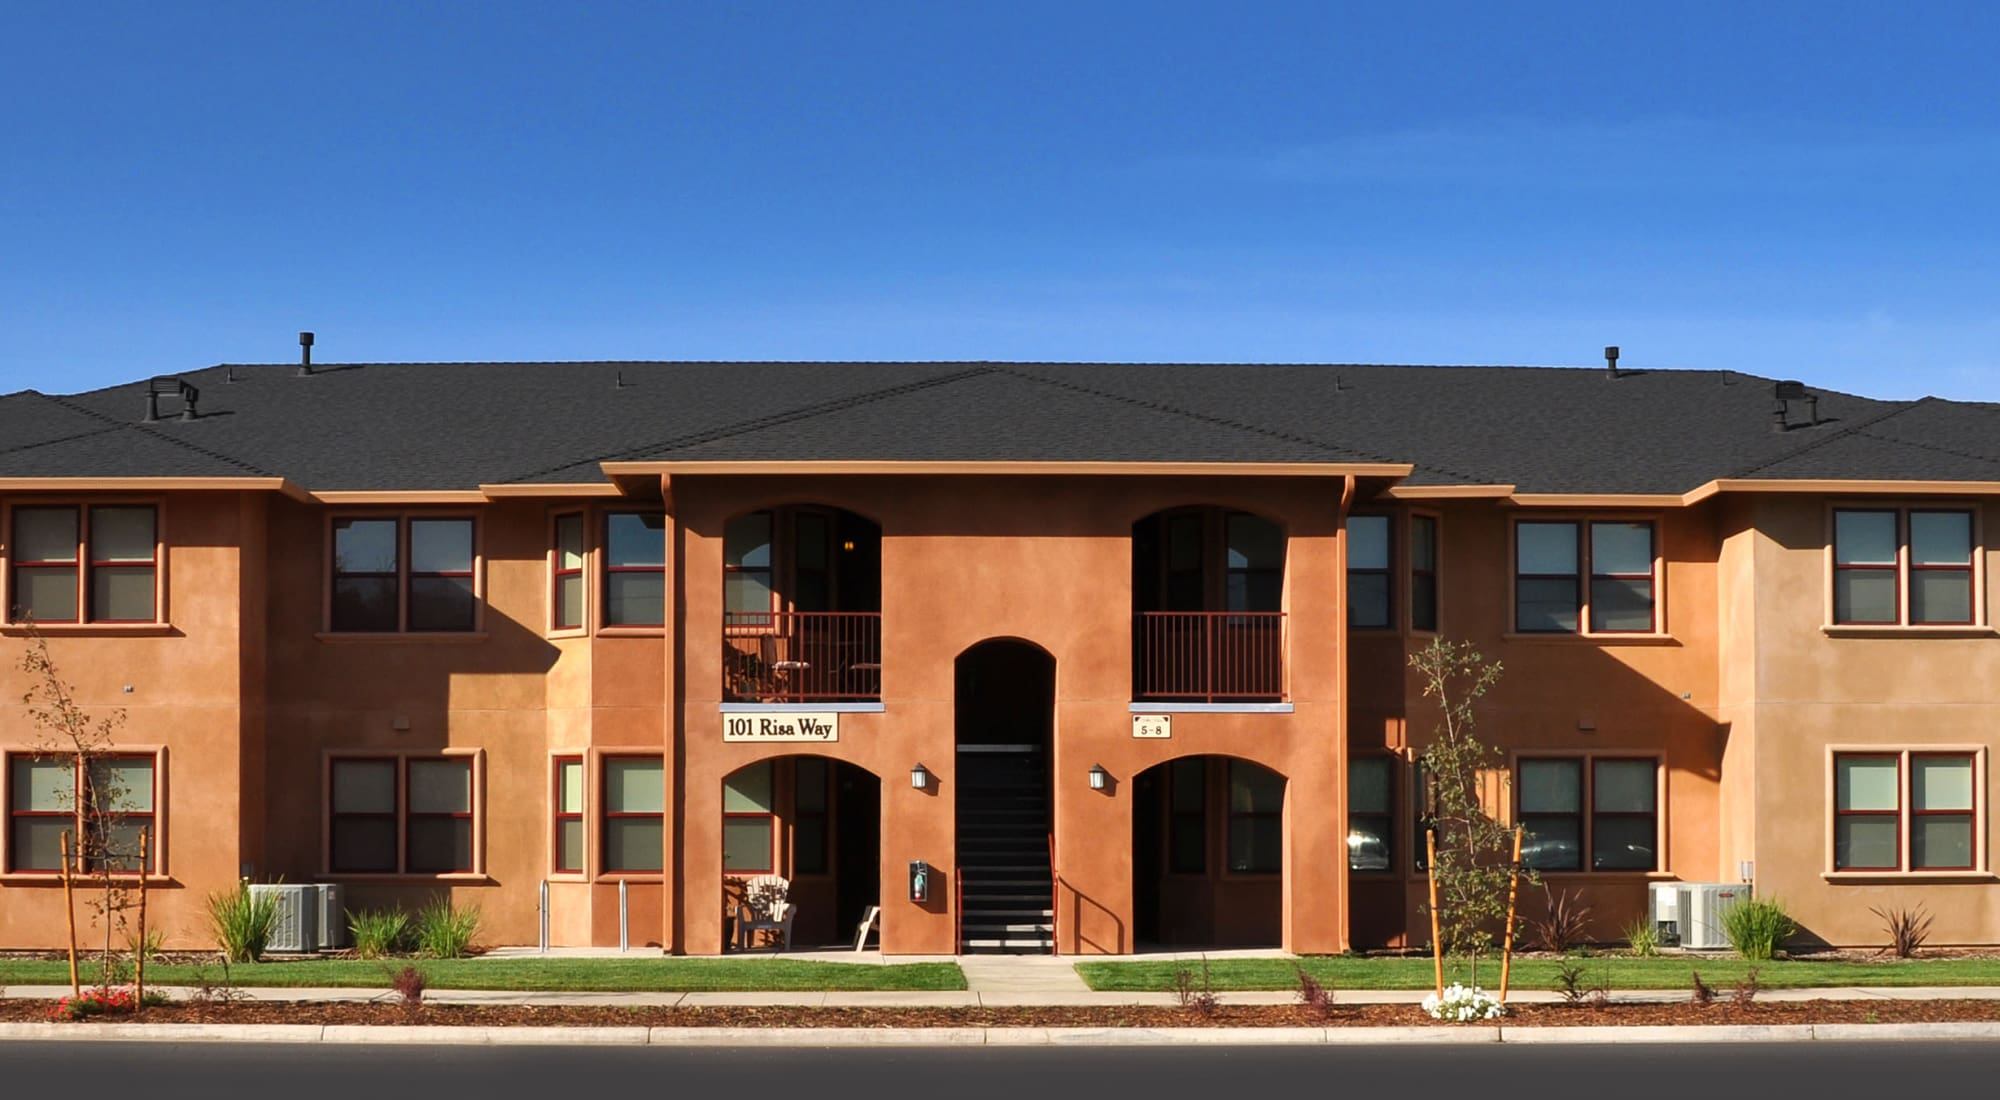 Photos of Villa Risa Apartments in Chico, California